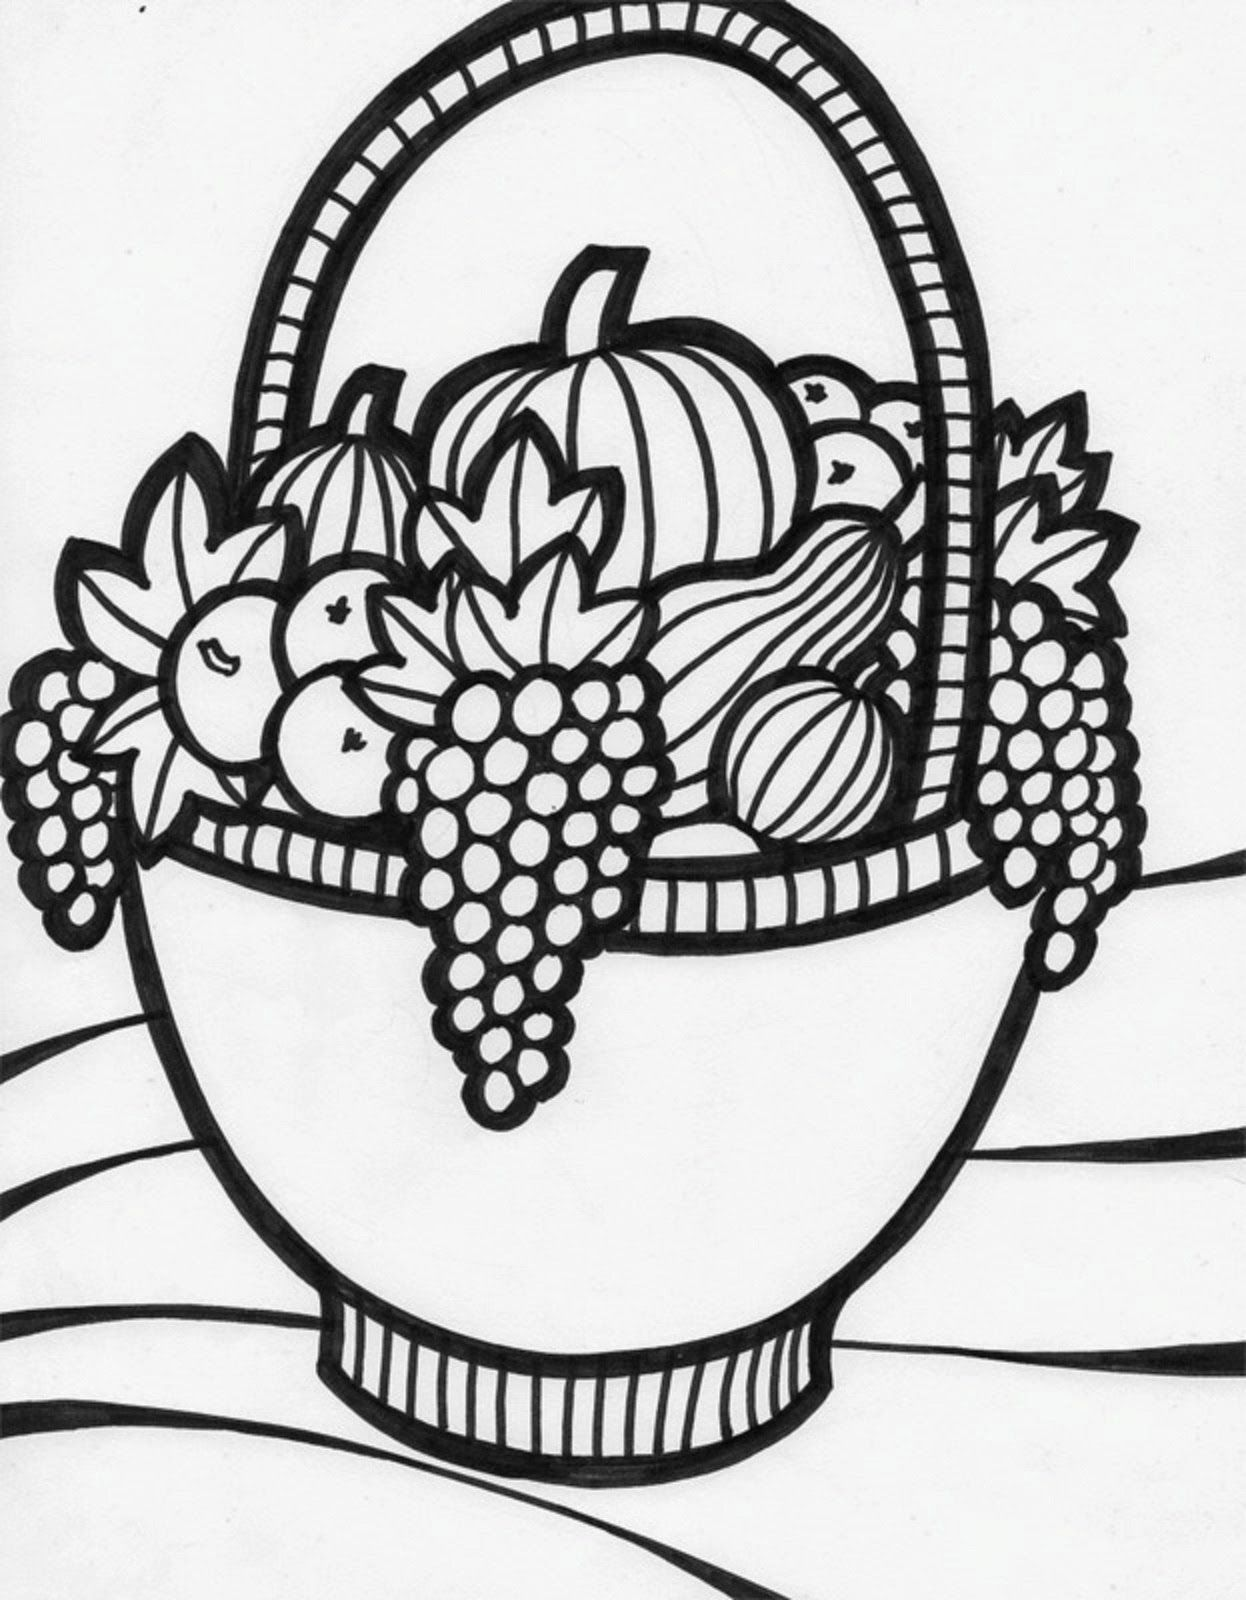 fruit bowl pictures to colour a bowl of fruits coloring page for kids fruits coloring colour fruit pictures bowl to